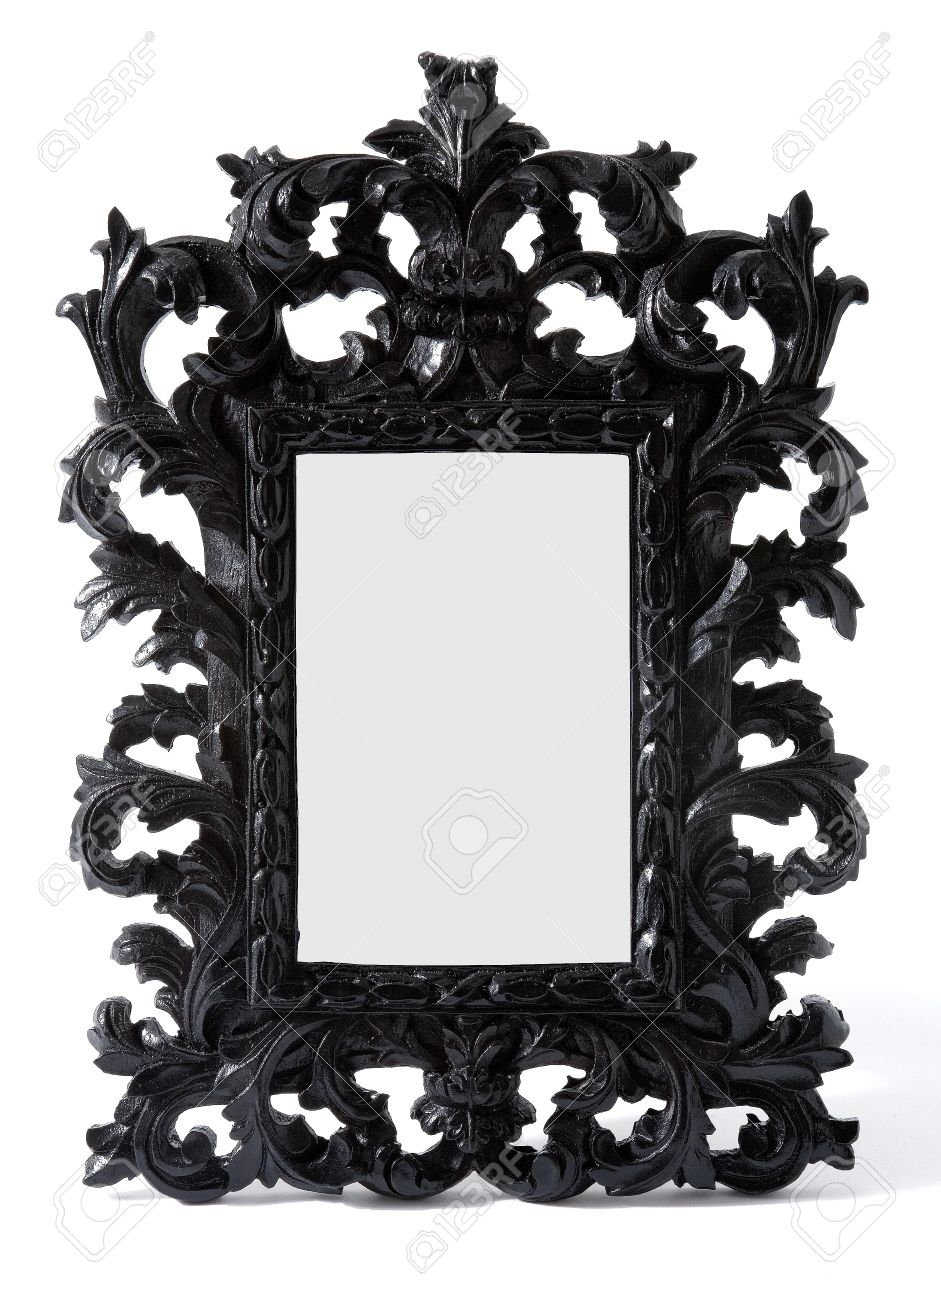 Baroque Black Painted Carved Wood Mirror Frame Isolated On White Regarding Baroque Mirror Black (Image 3 of 15)